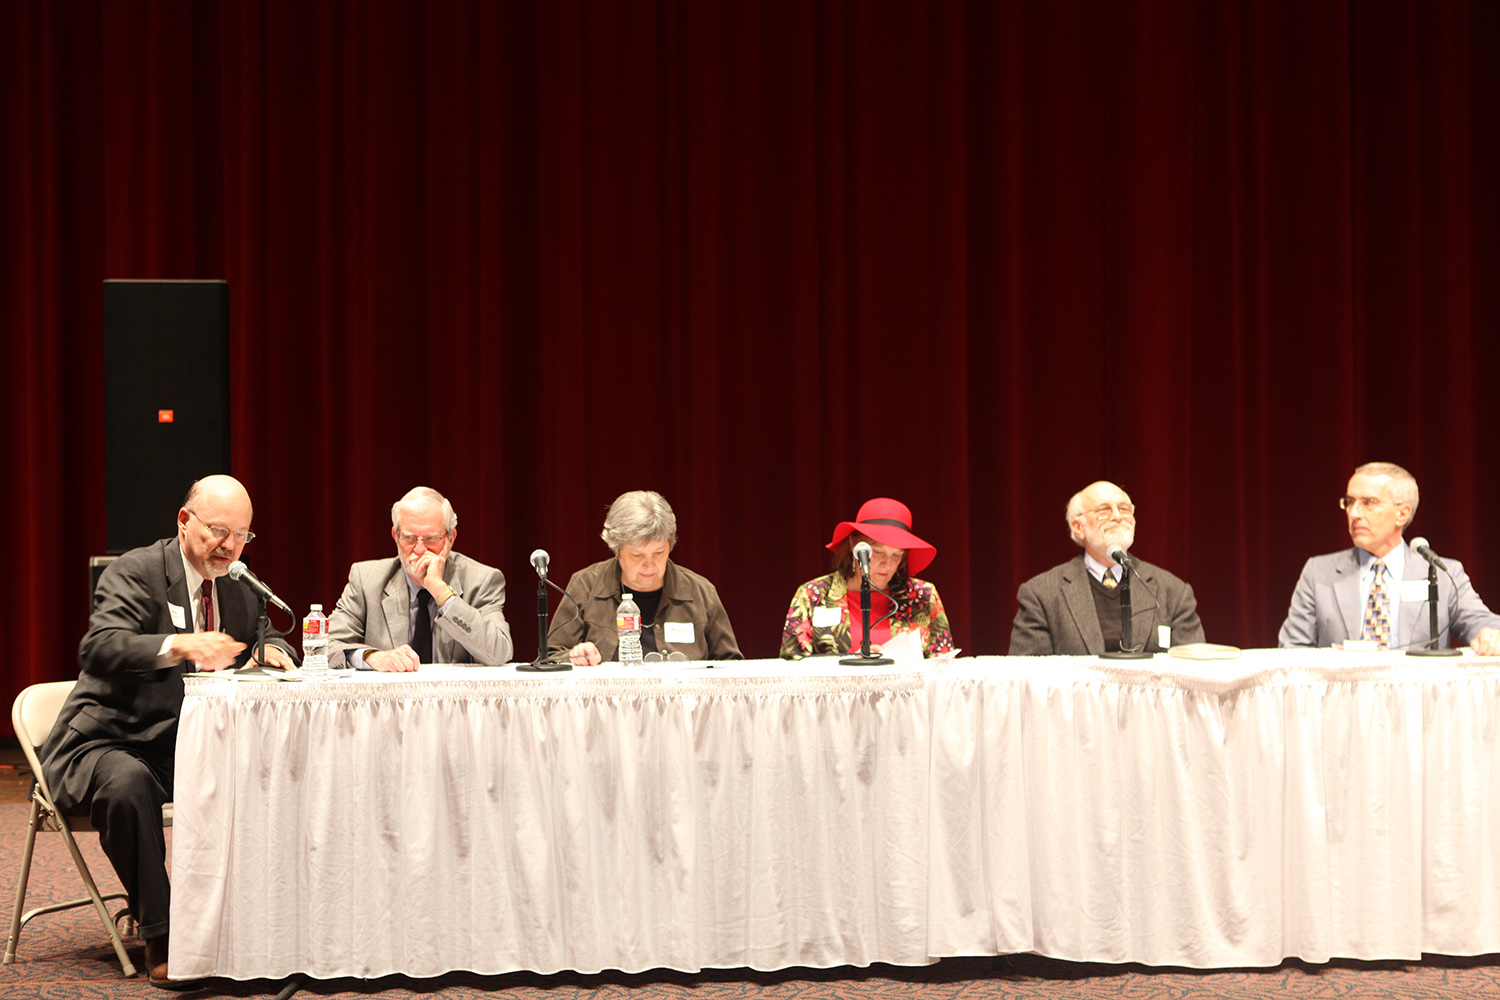 Panel Discussion_CS Lewis Conference 2013.JPG